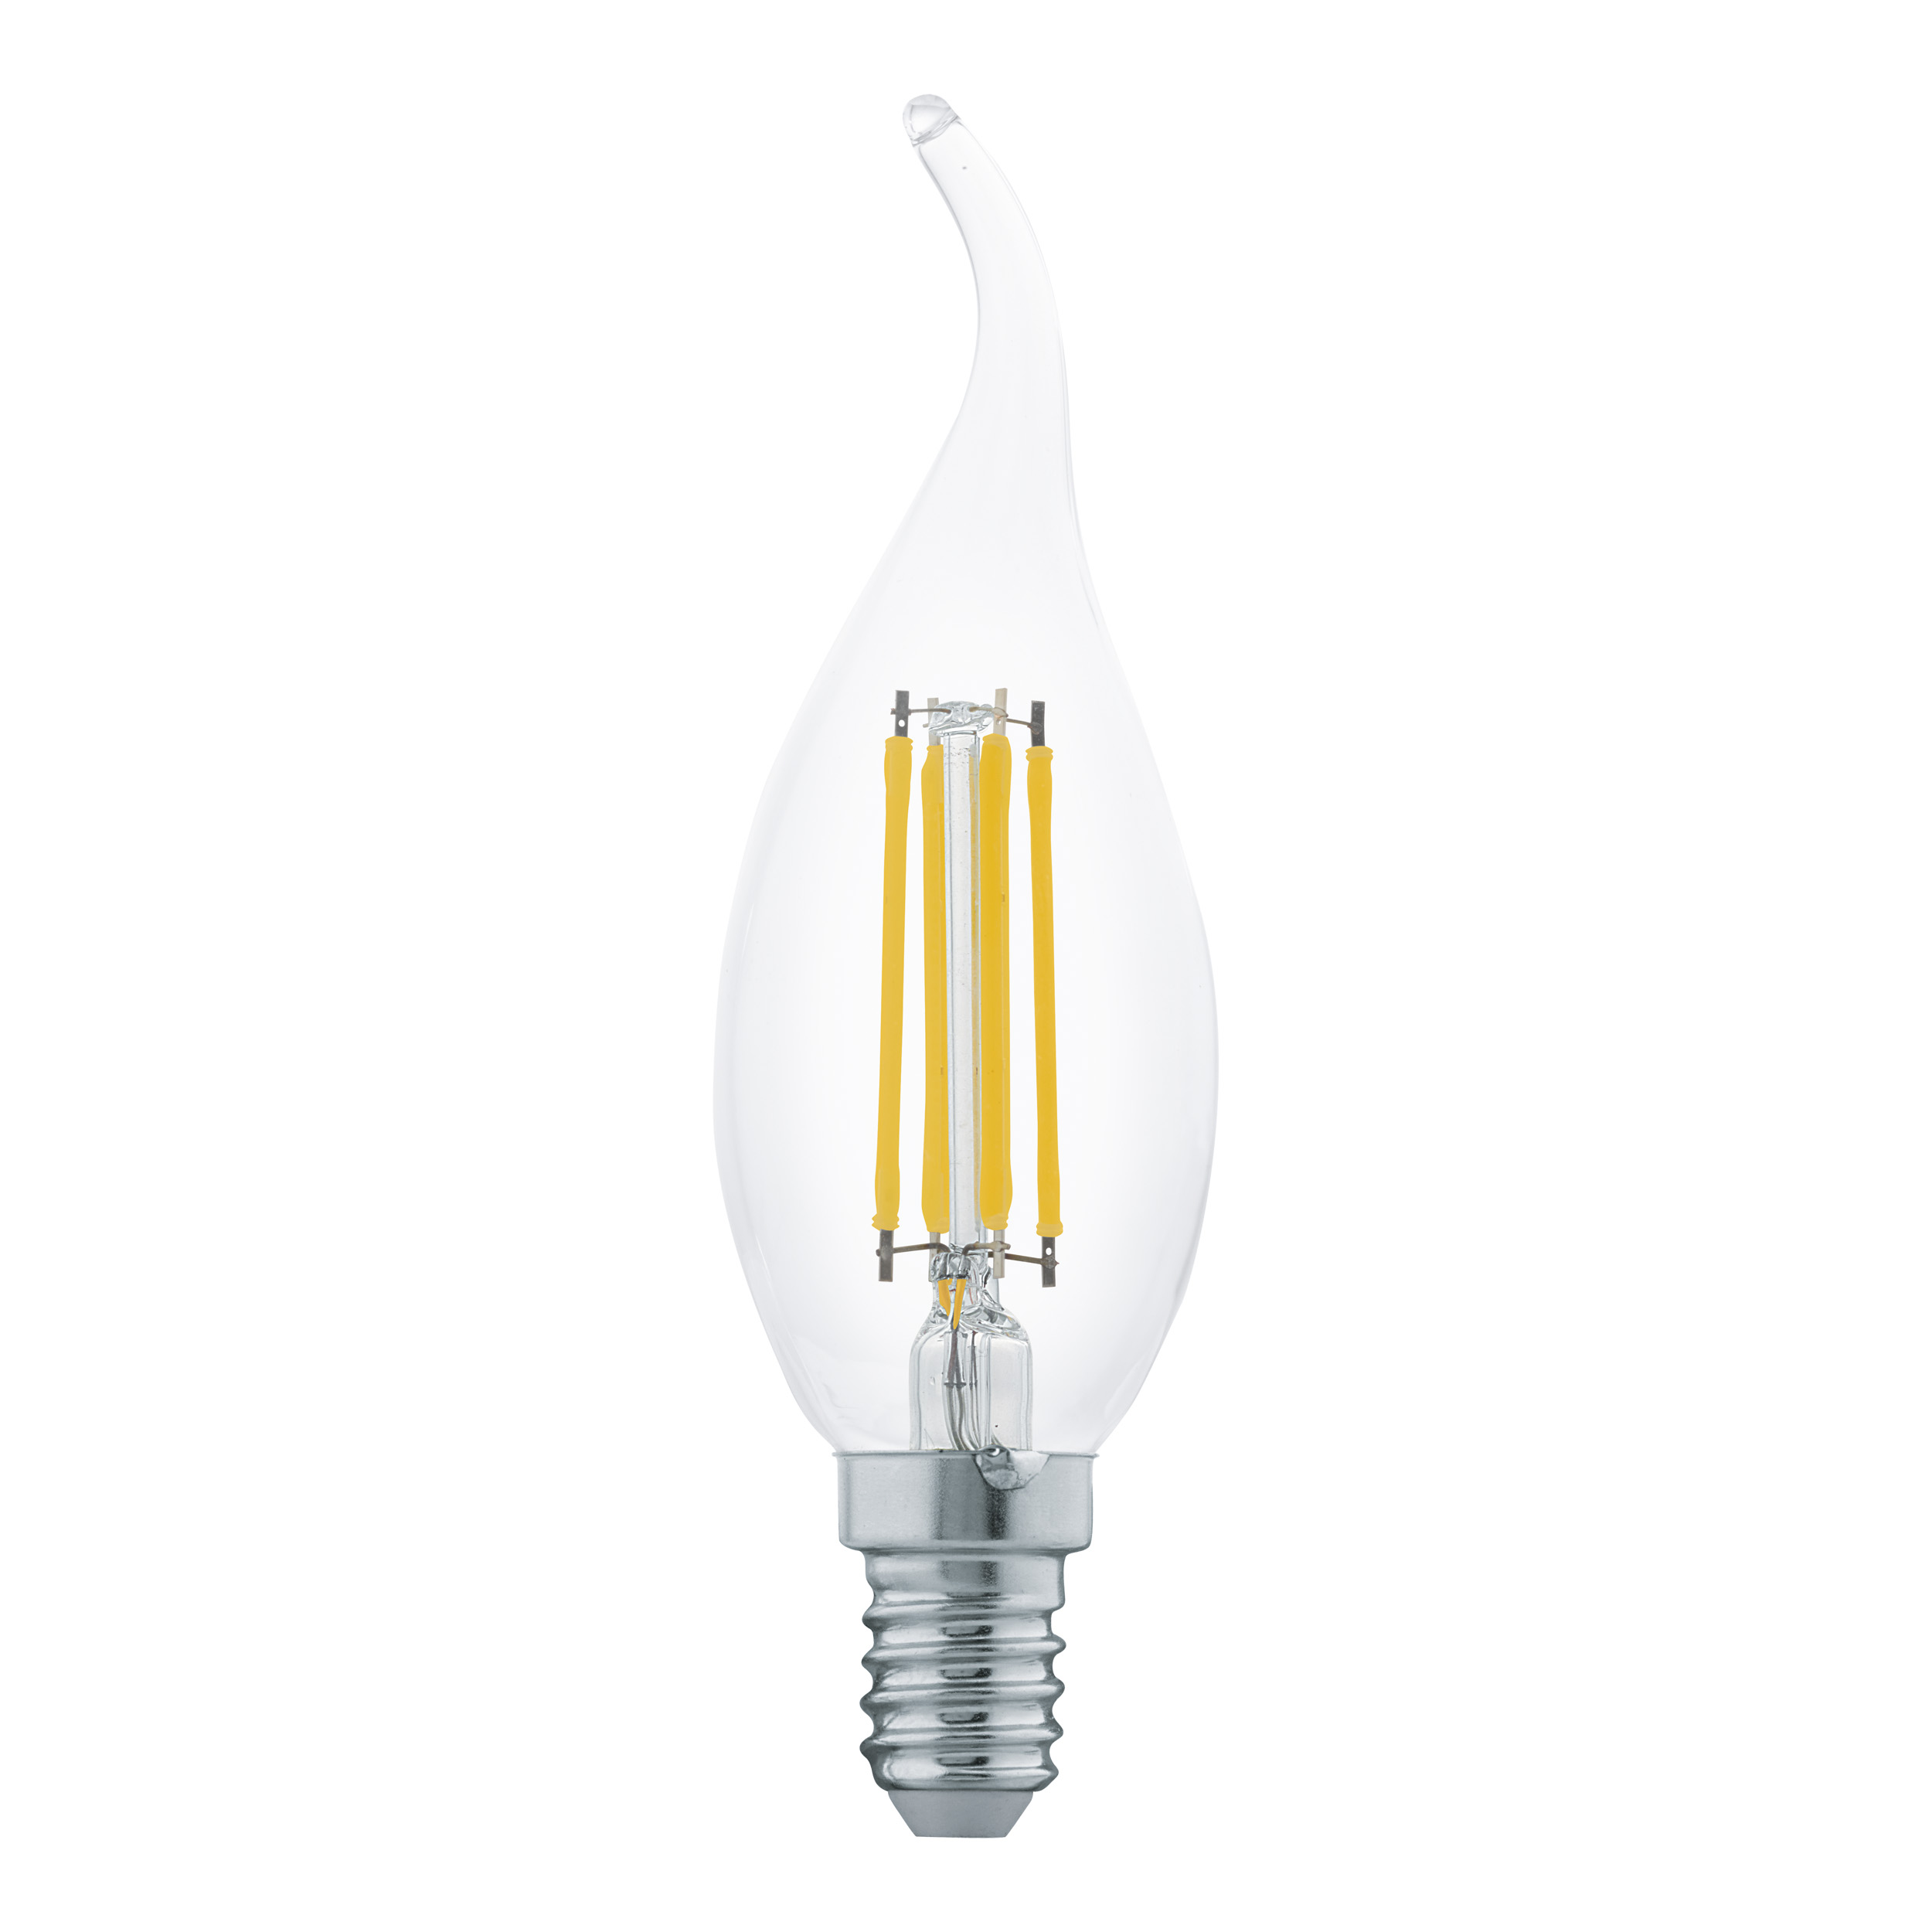 1 Stk E14-LED-CF35 4W / Windstosskerze 2700  LI69215---